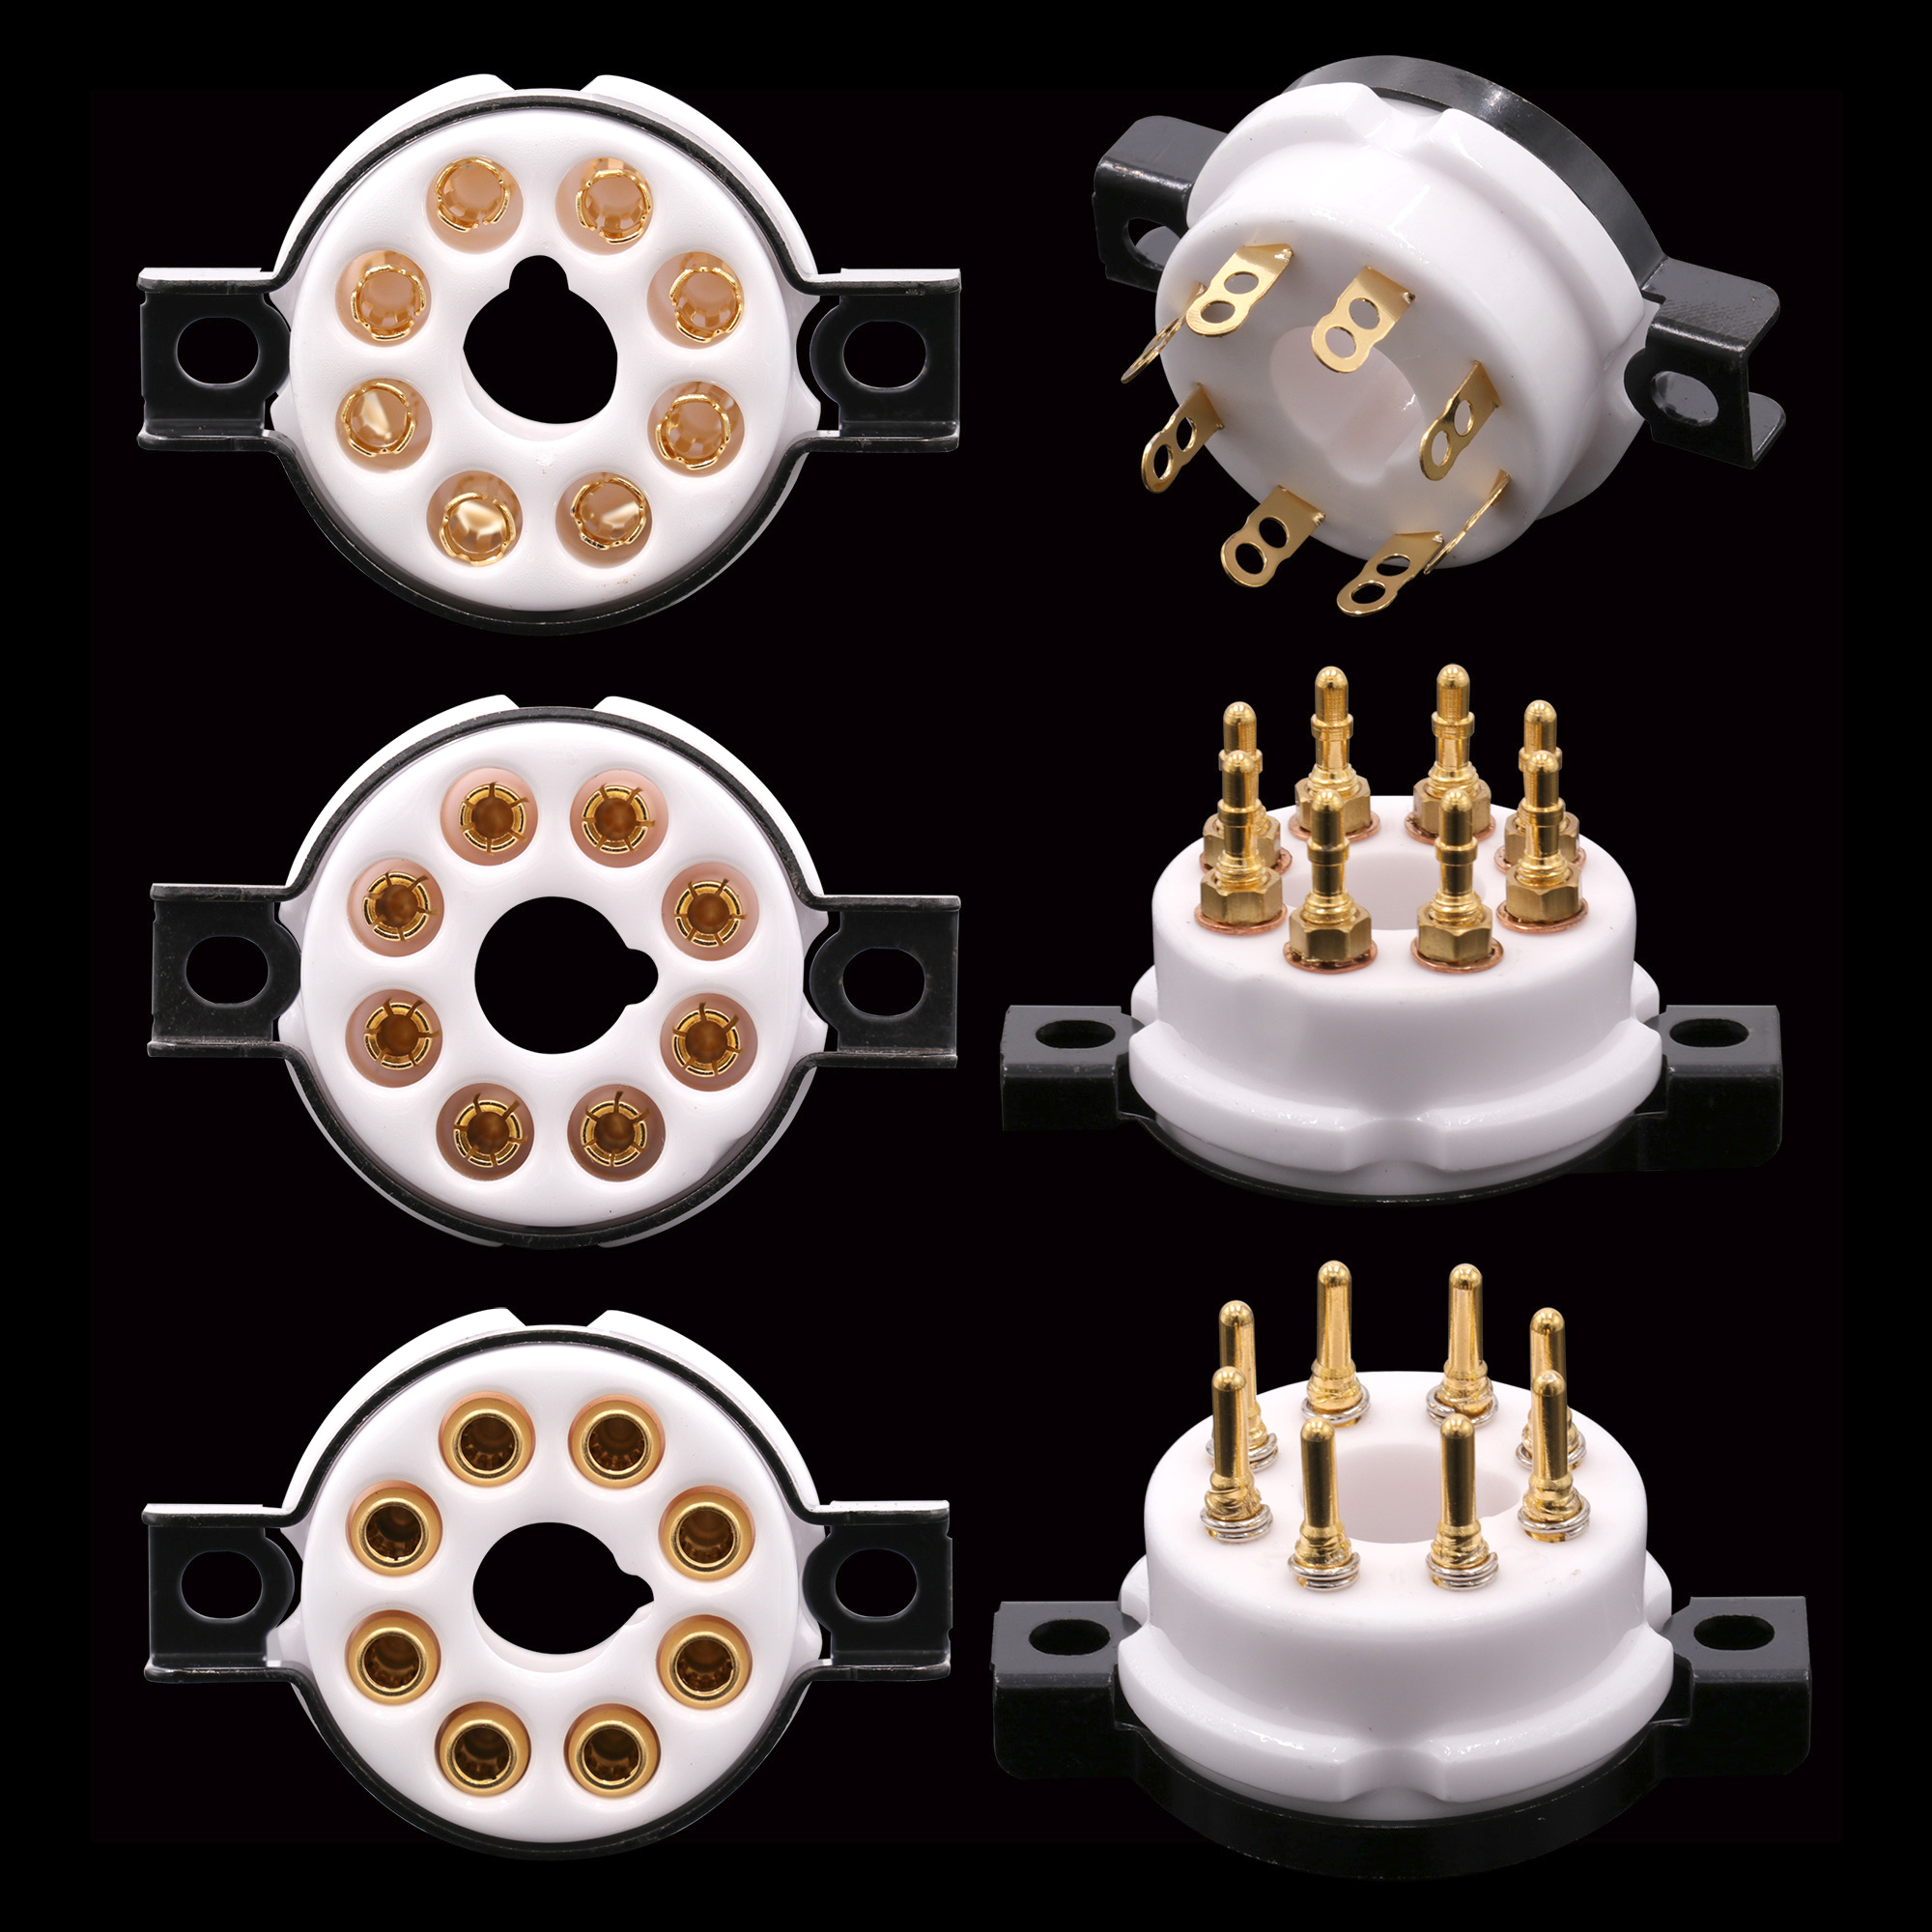 EIZZ High End Keramik 8pin Octal Vakuum Rohr Buchse Basis Gold Messing Pins Für EL34 KT88 6550 6V6 274B <font><b>6L6</b></font> hifi Rohr <font><b>AMP</b></font> DIY 1PC image